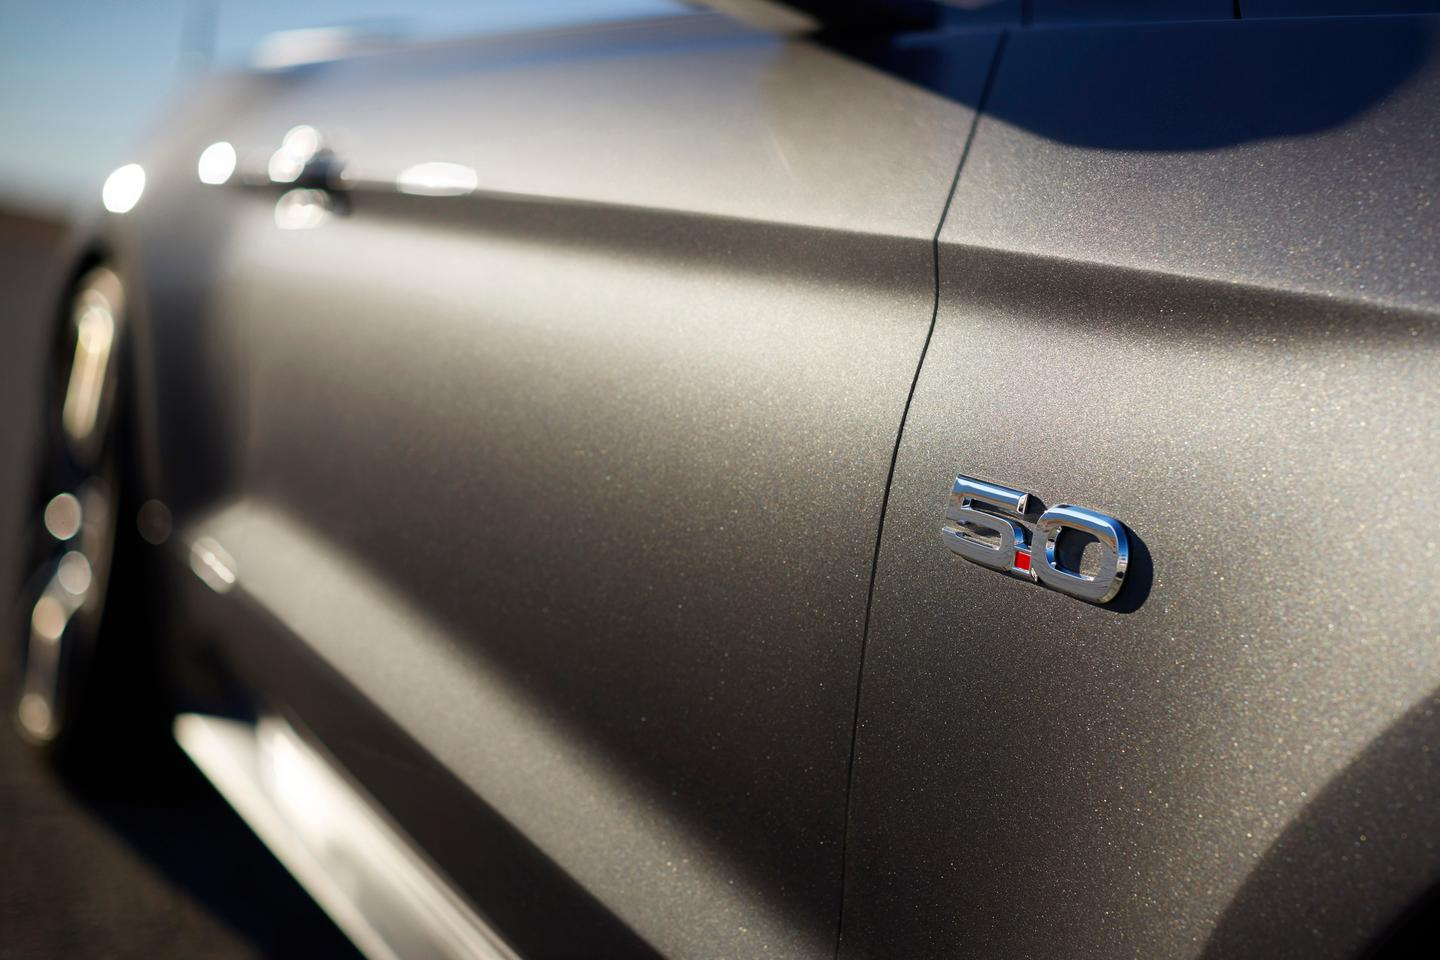 The new 2015 Mustang can be specced with a six-speed manual or automatic gearboxes